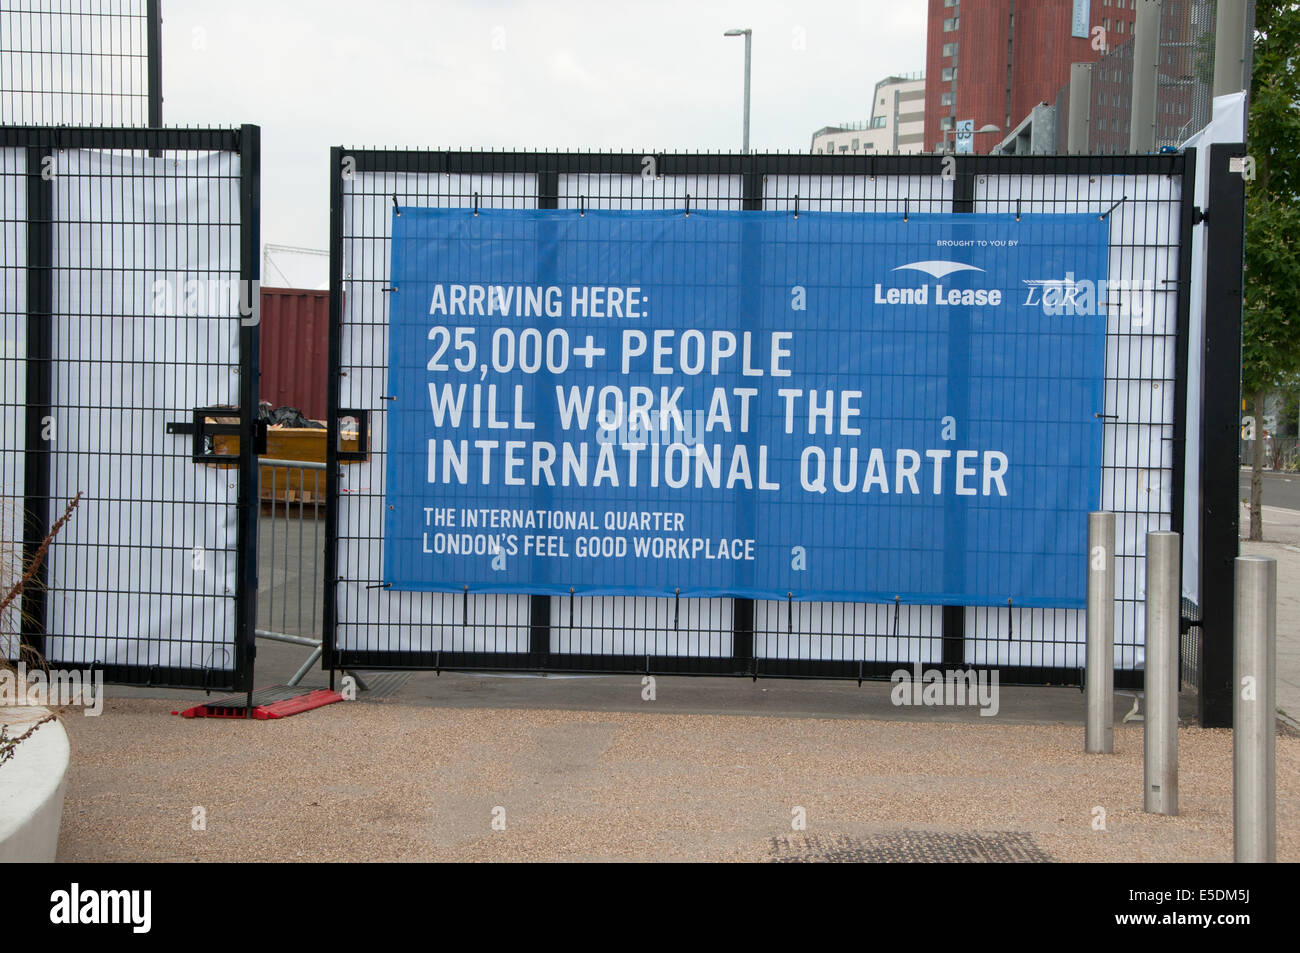 London July 2014. Queen Elizabeth Park, Stratford. Sign saying 25,000 people will work here - Stock Image